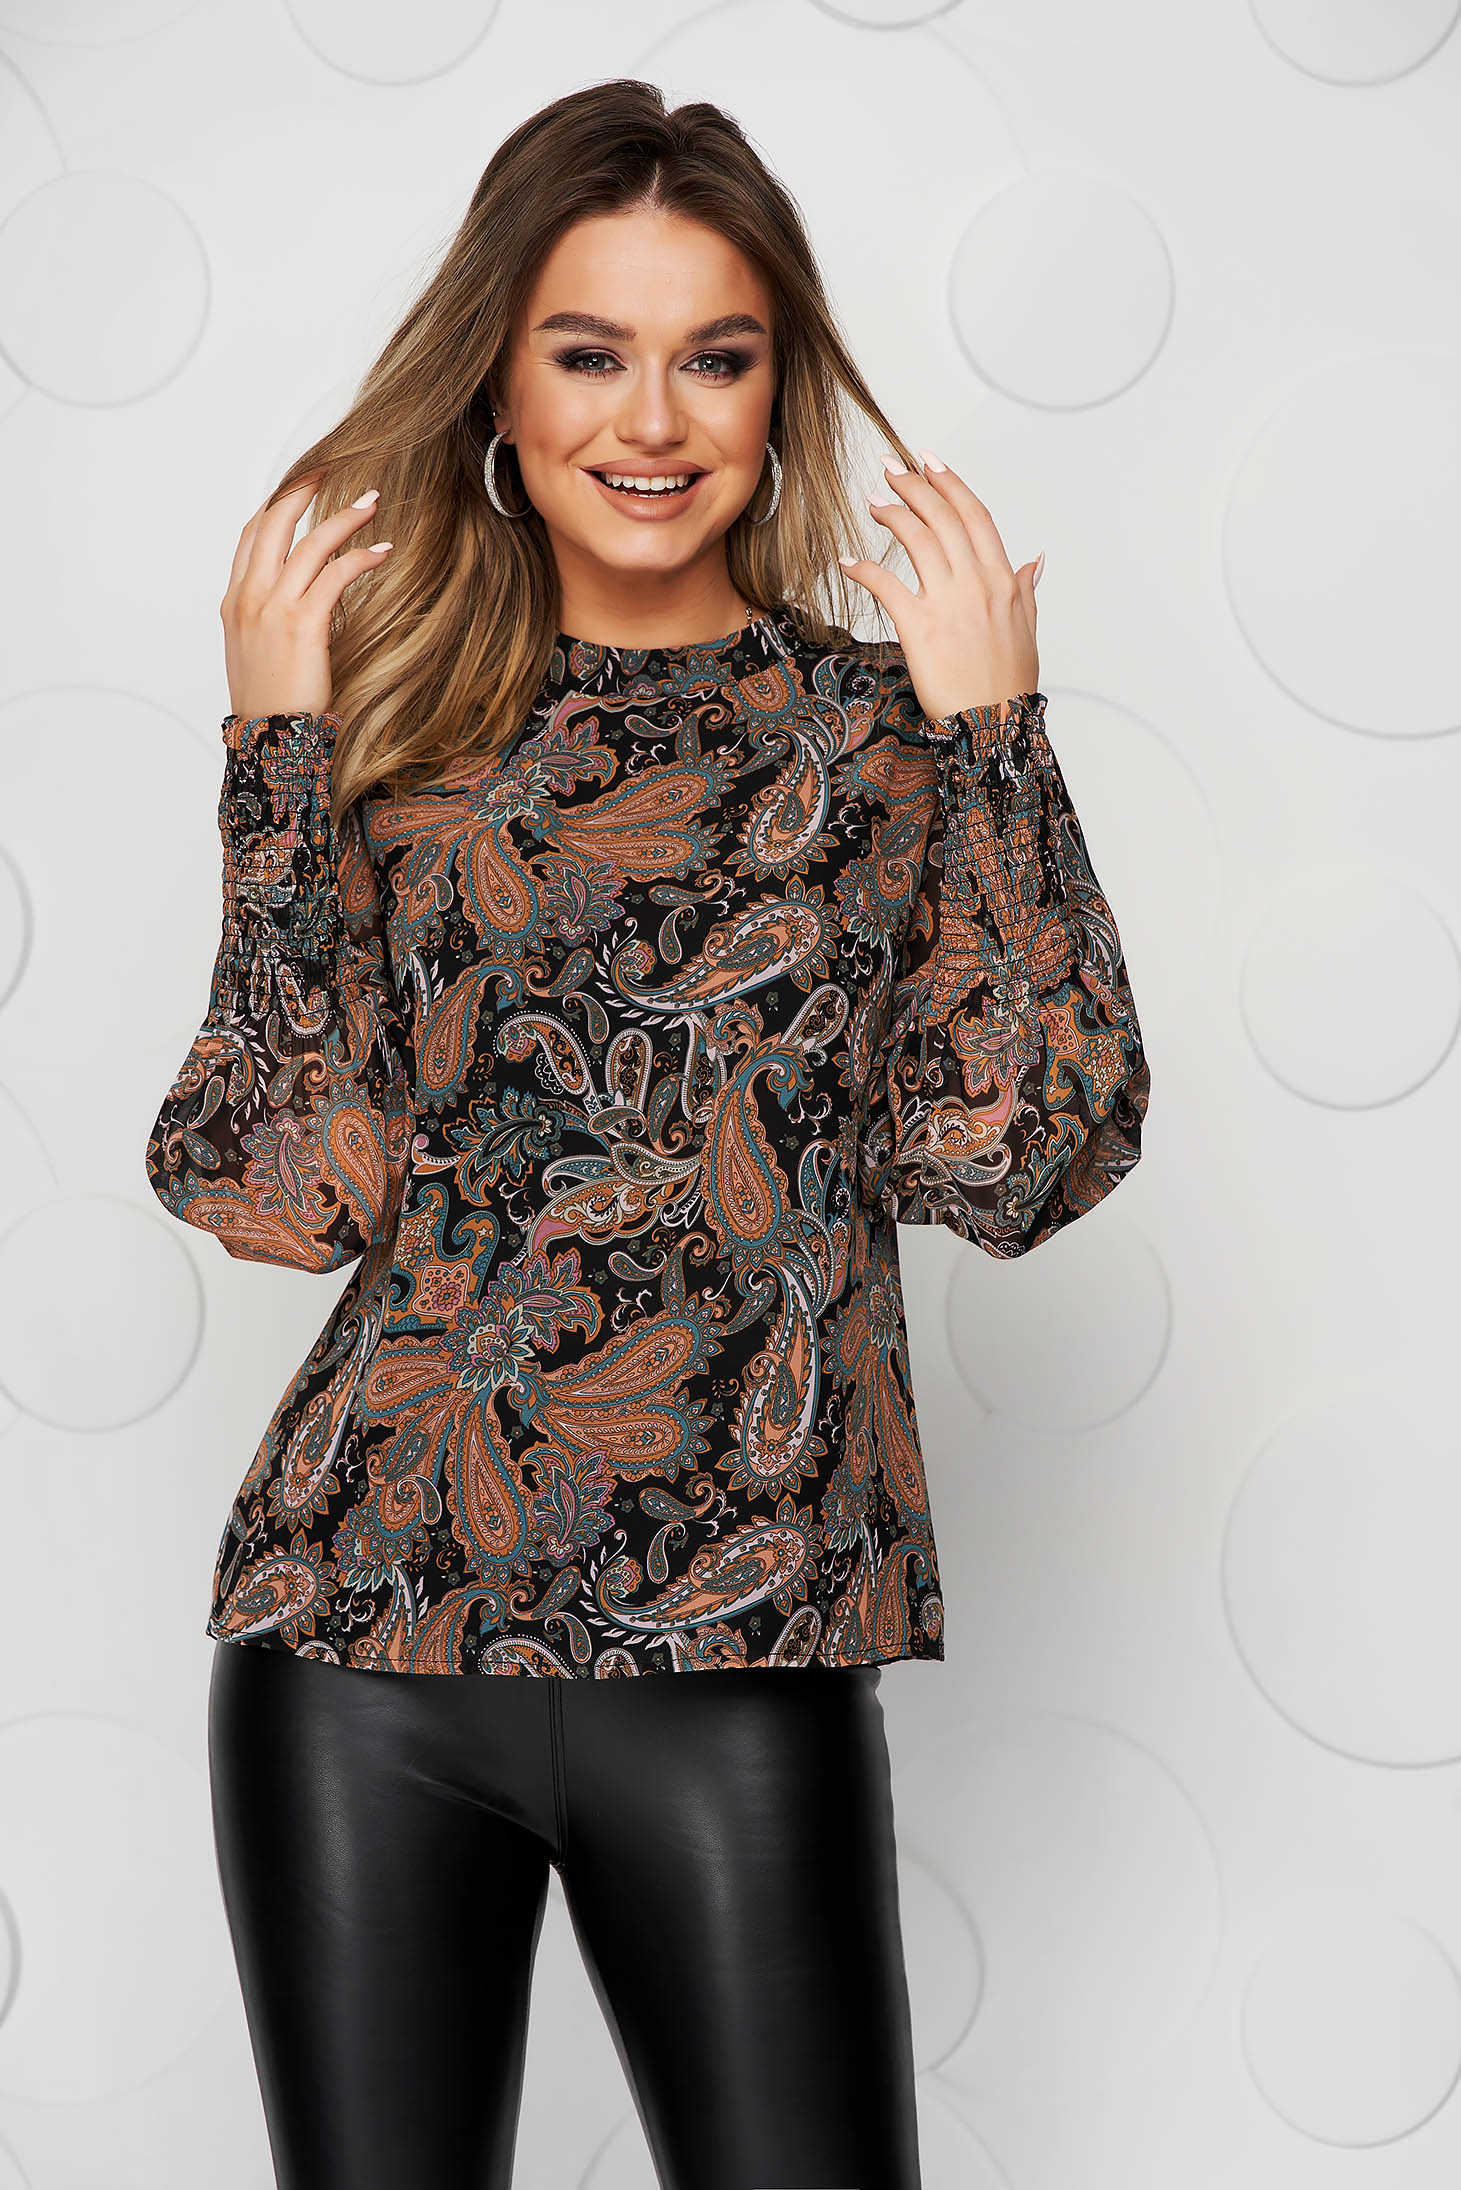 Darkblue women`s blouse with floral print with puffed sleeves loose fit